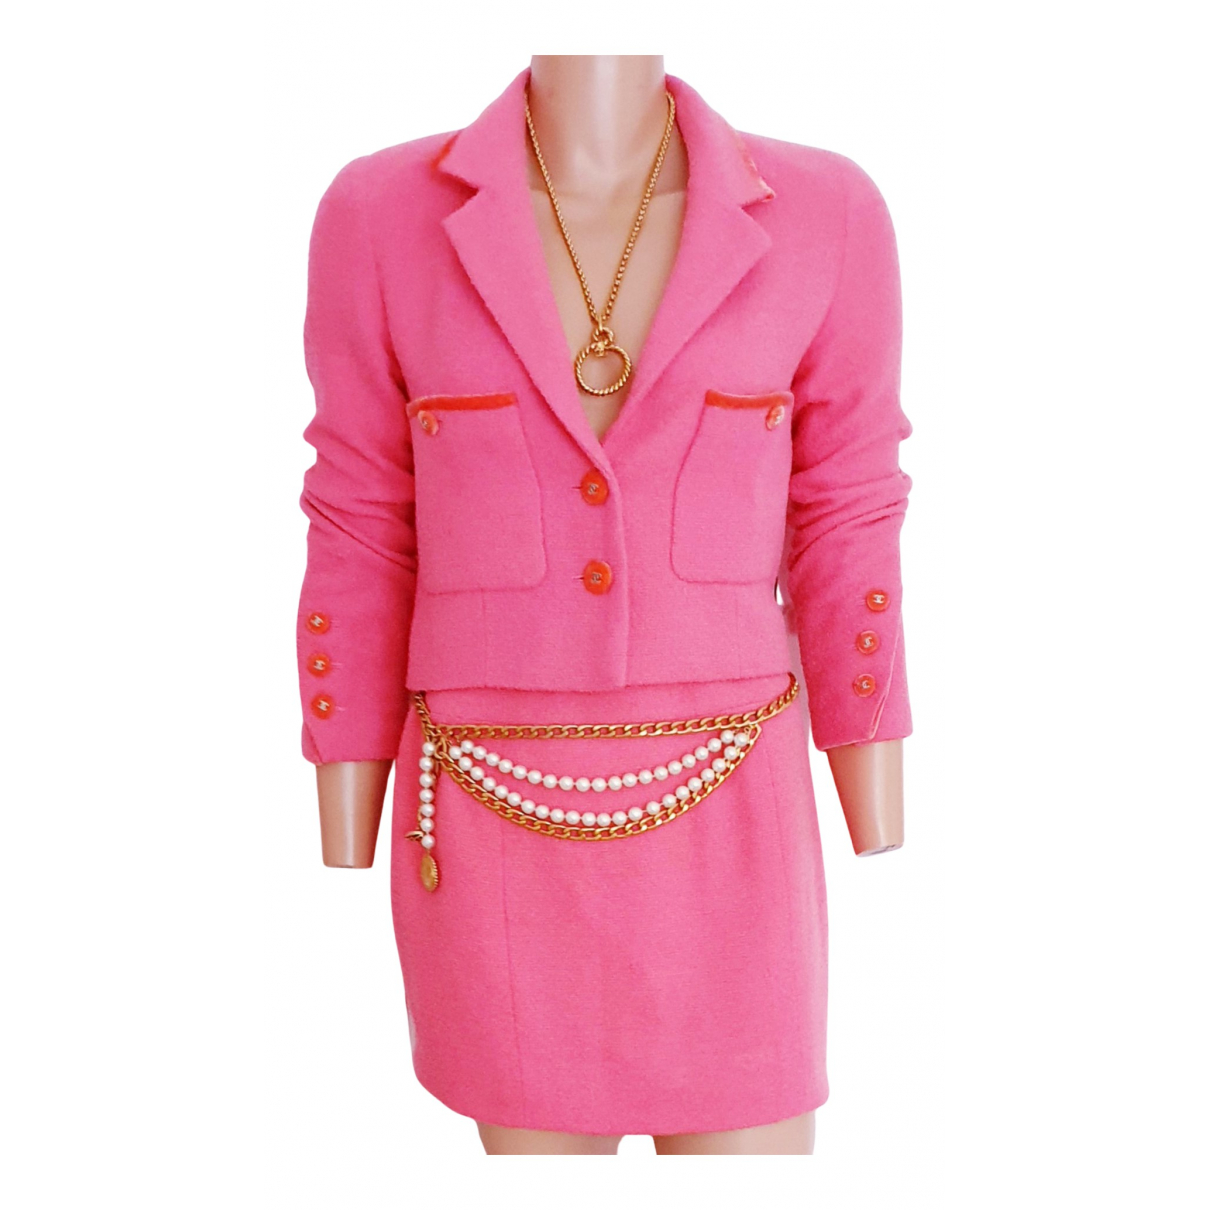 Chanel N Pink Tweed jacket for Women 42 FR